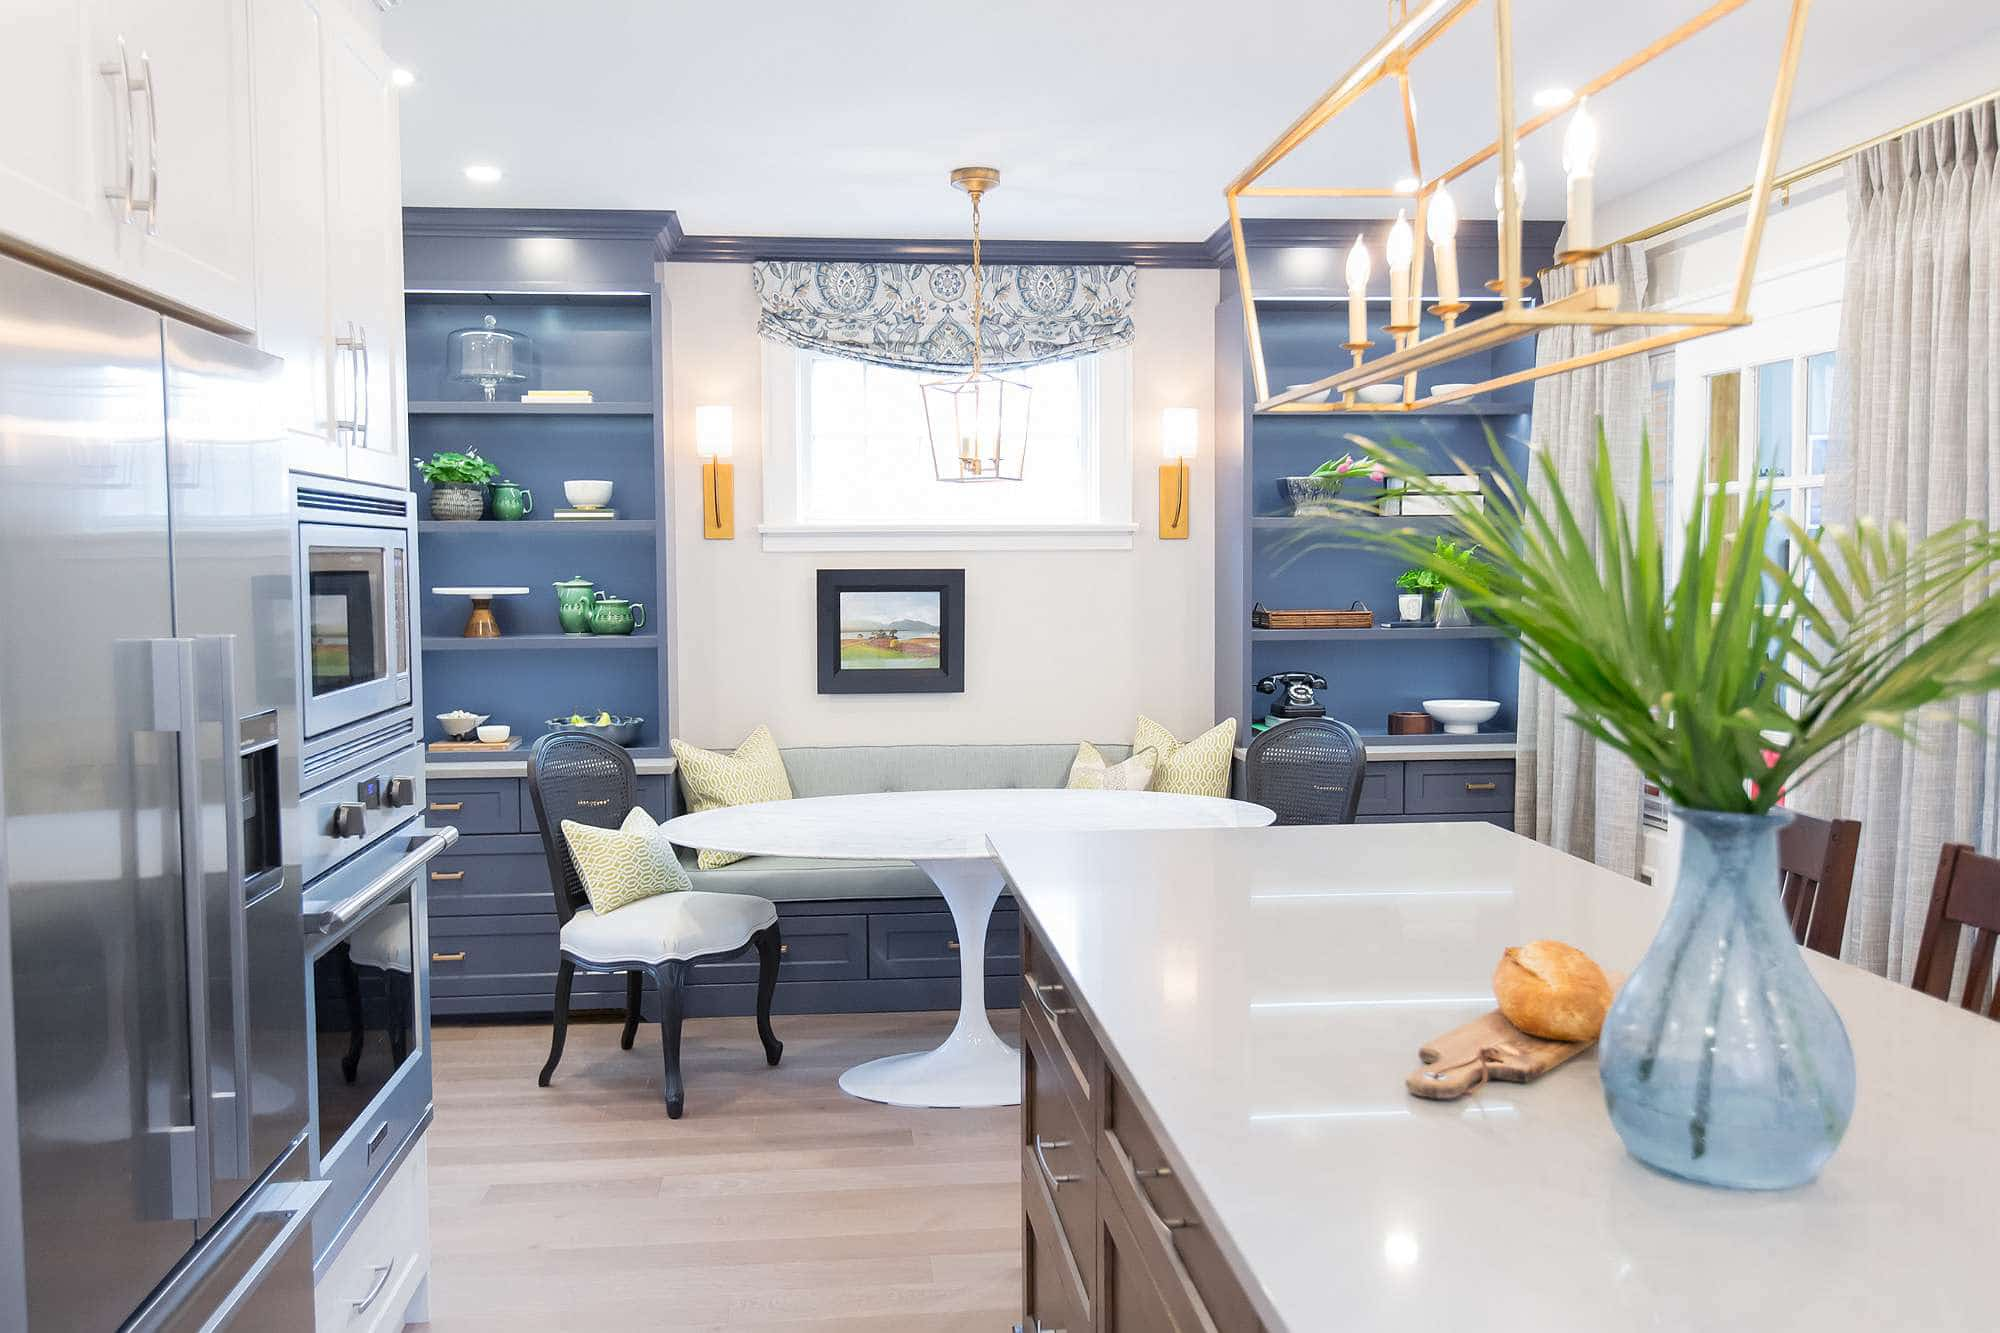 Kitchen featuring white main cabinets with double stainless steel wall oven and fridge, and stained wood island with off white quartz counter top and dining room featuring white marble top oval table, banquette seating and cabinet with upper open shelving